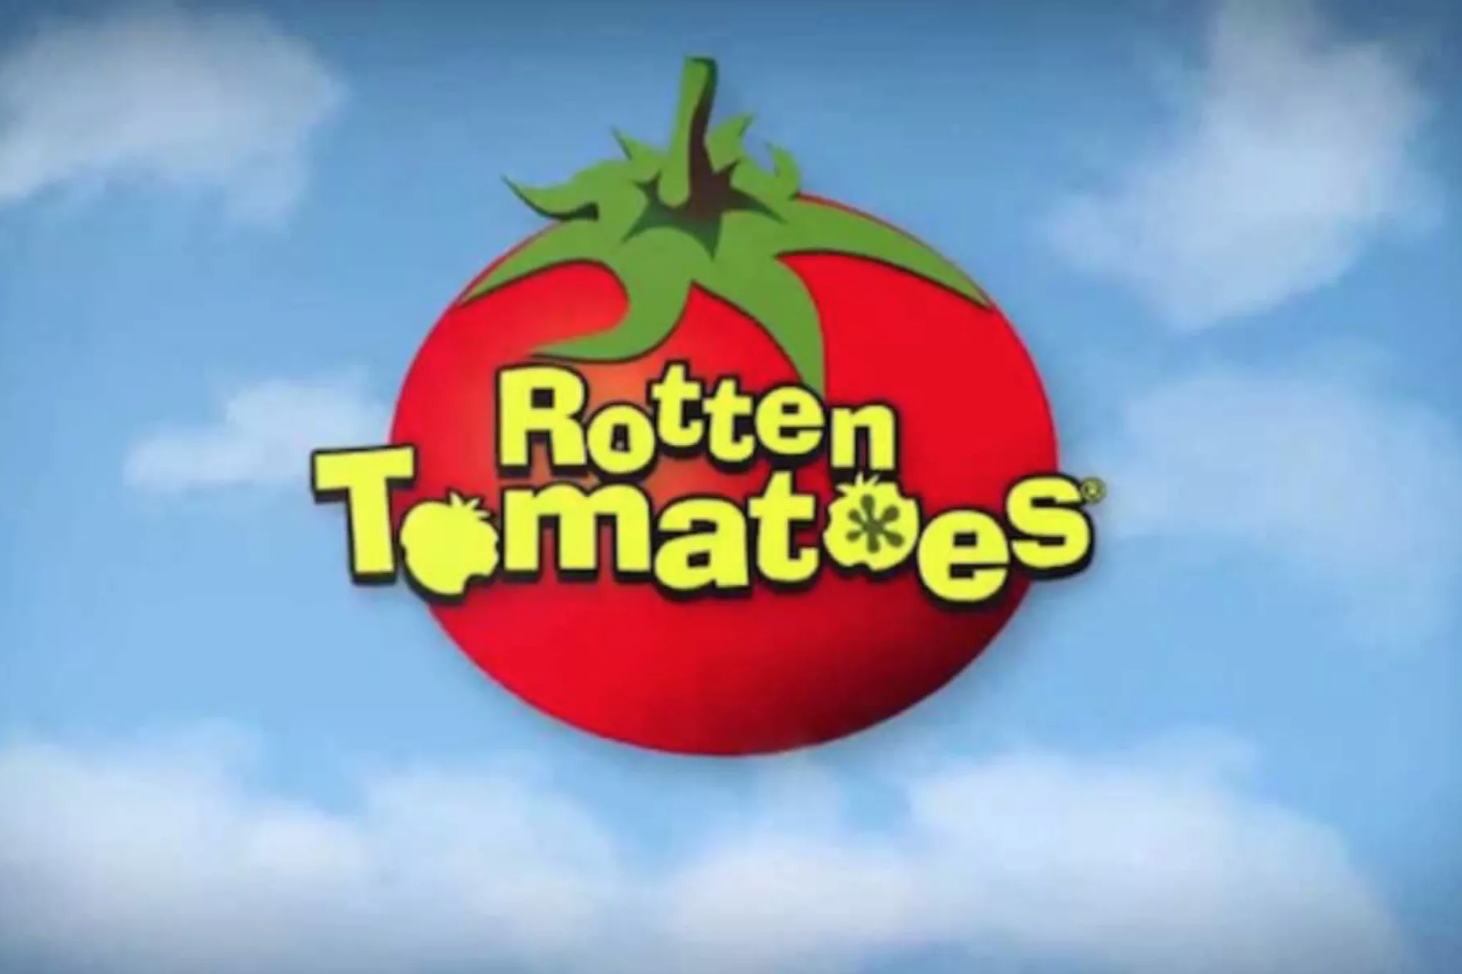 Rotten Tomatoes Announces Adding 600 New Critics From Underrepresented Groups